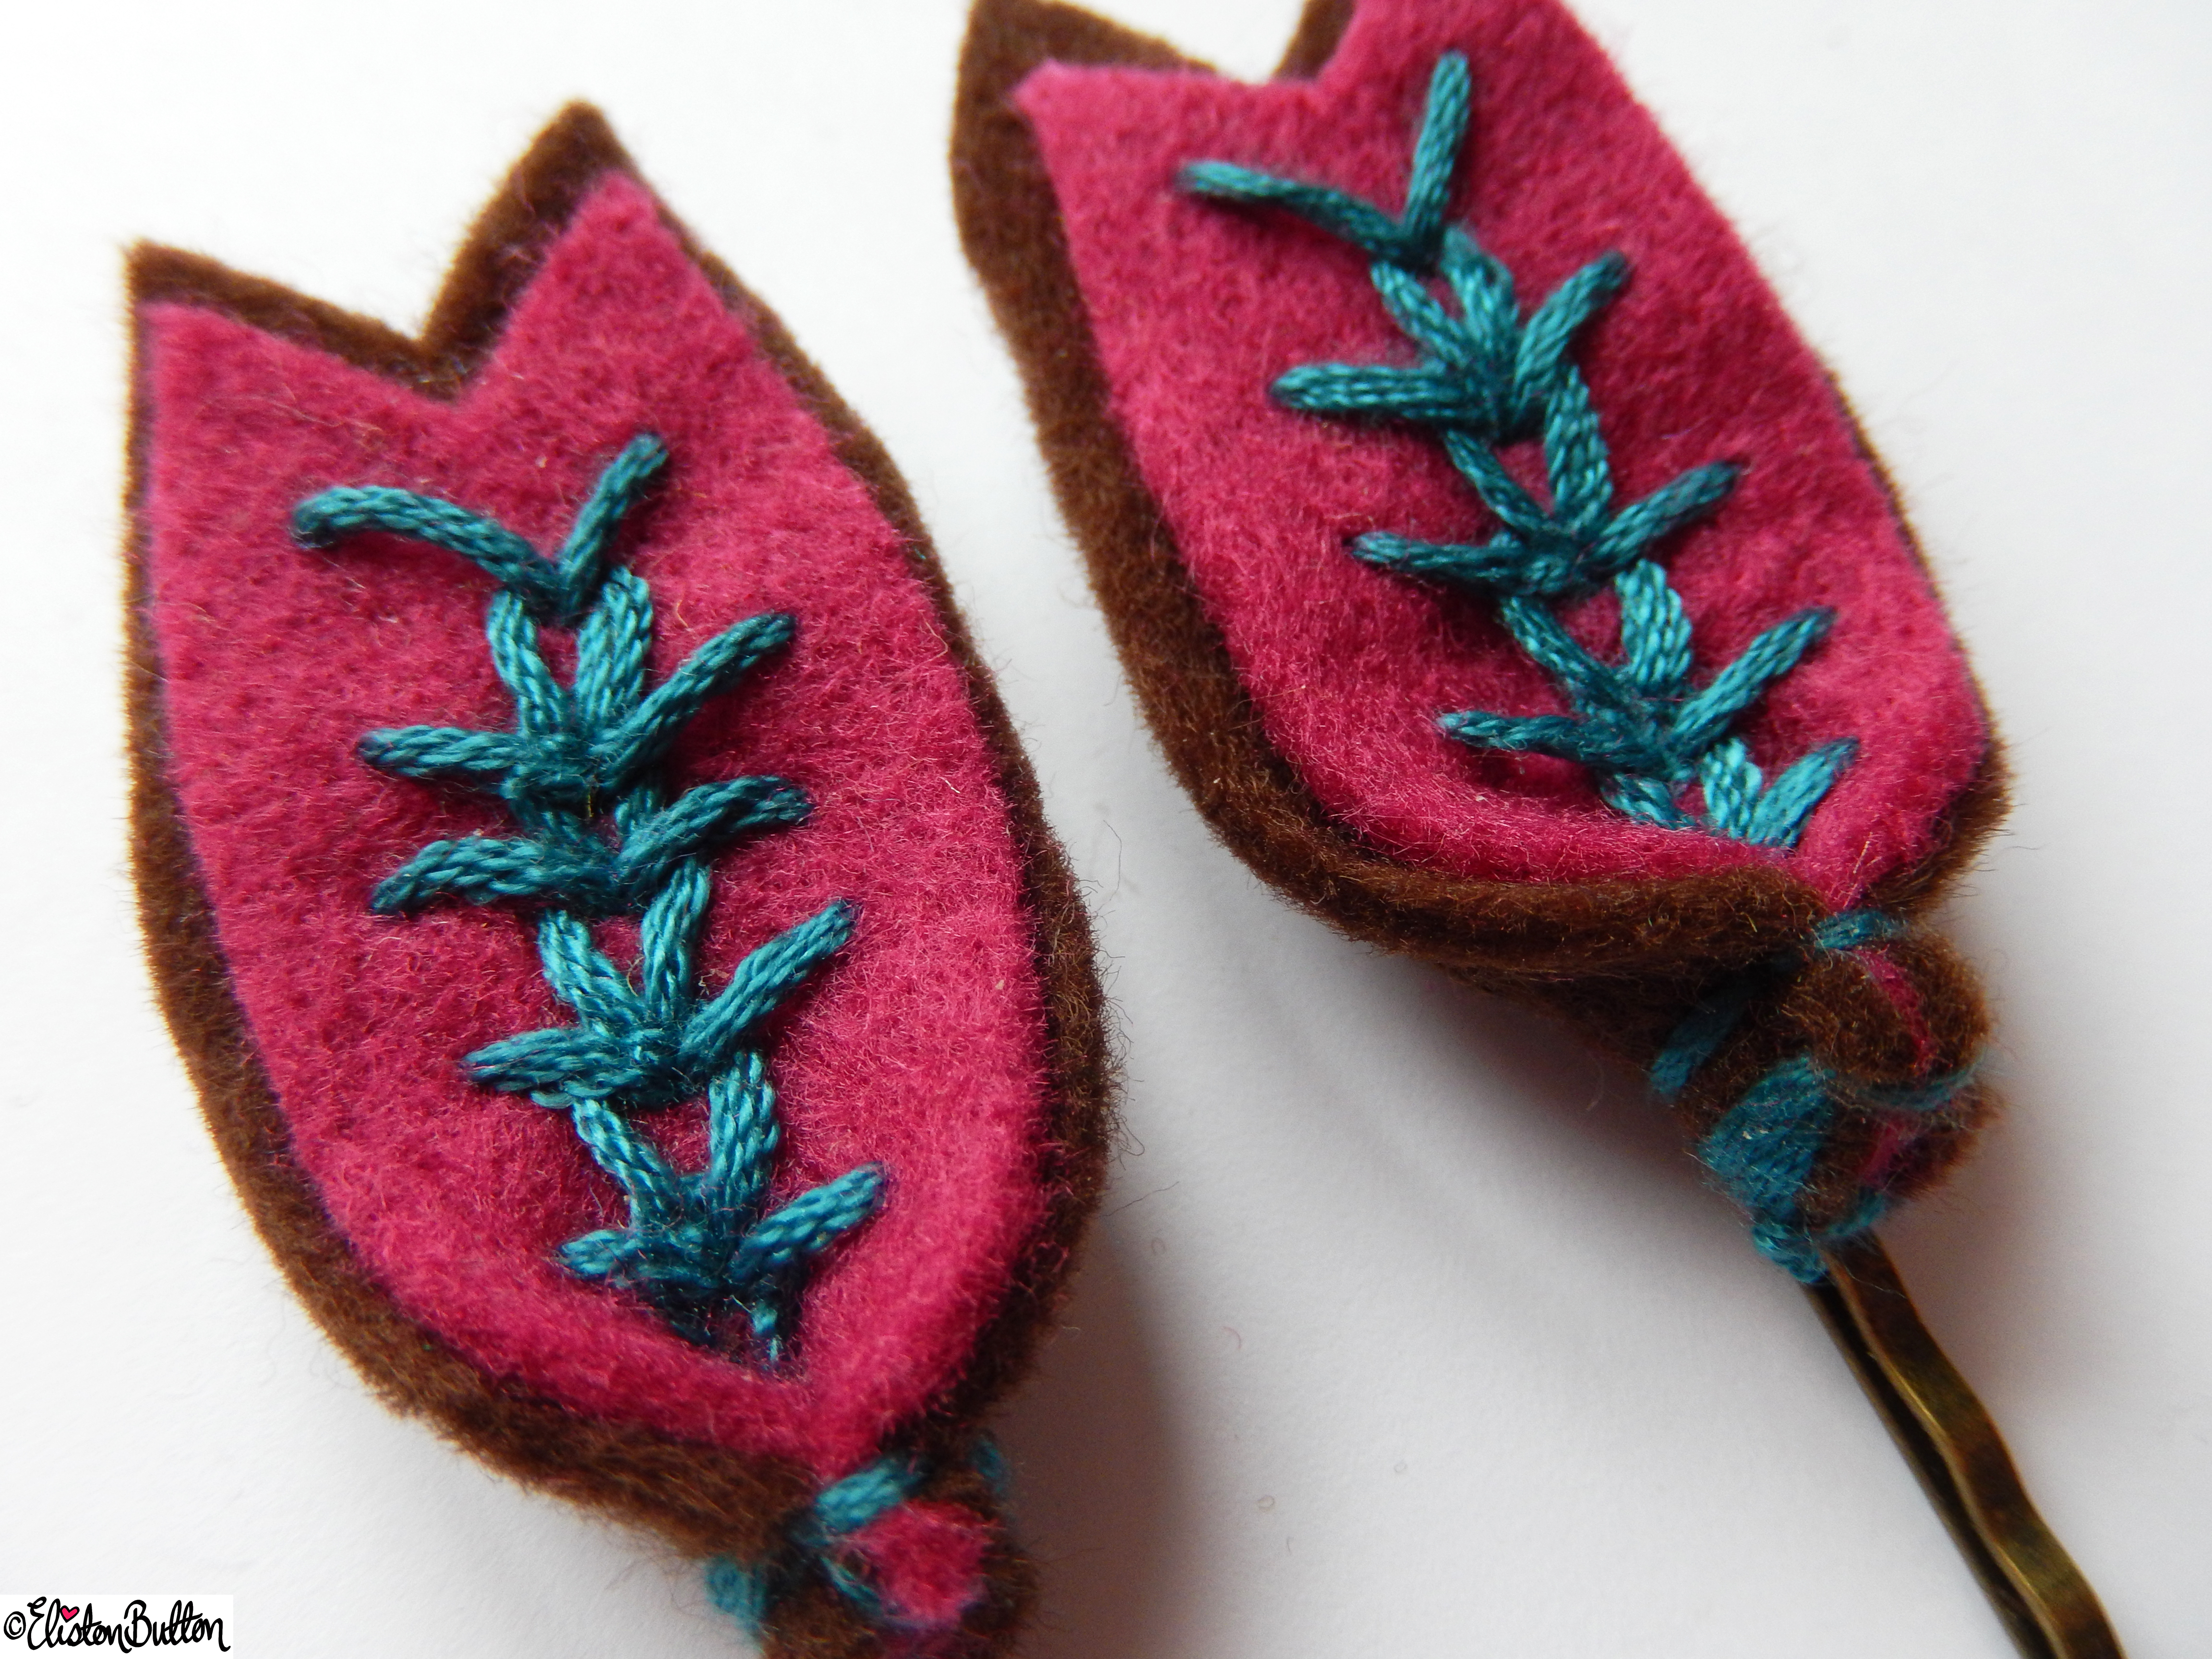 Chocolate Brown, Raspberry Pink and Teal Embroidered Hair Grips Closer Up - Create 28 - No.4 - Embroidered Felt Petal Hair Grips at www.elistonbutton.com - Eliston Button - That Crafty Kid – Art, Design, Craft & Adventure.